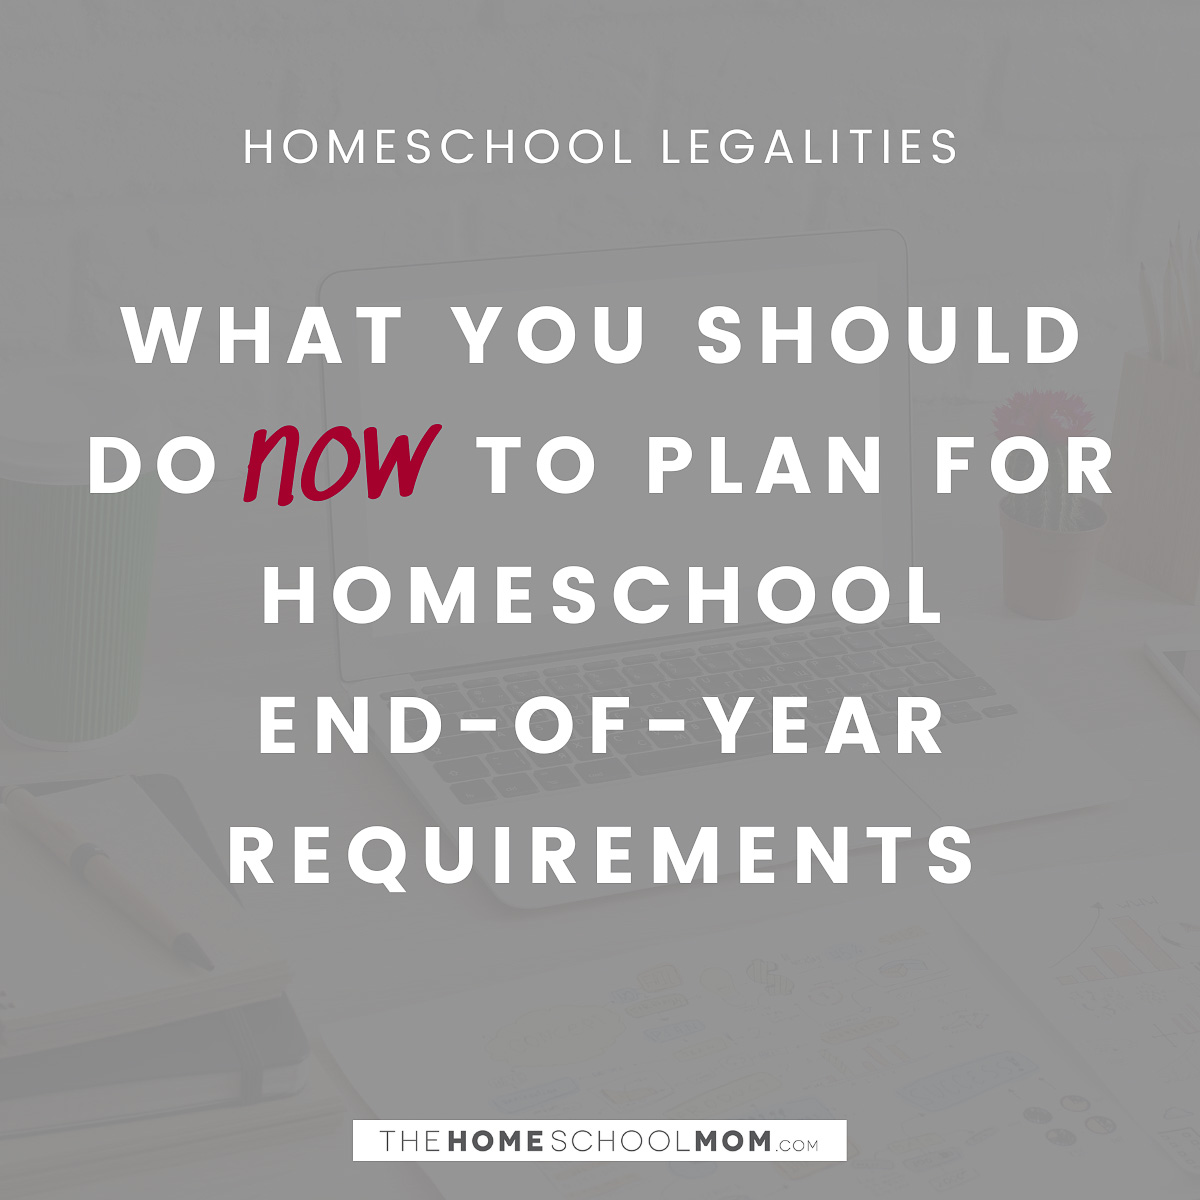 Homeschool Legalities: What you should do now to plan for homeschool end of year requirements